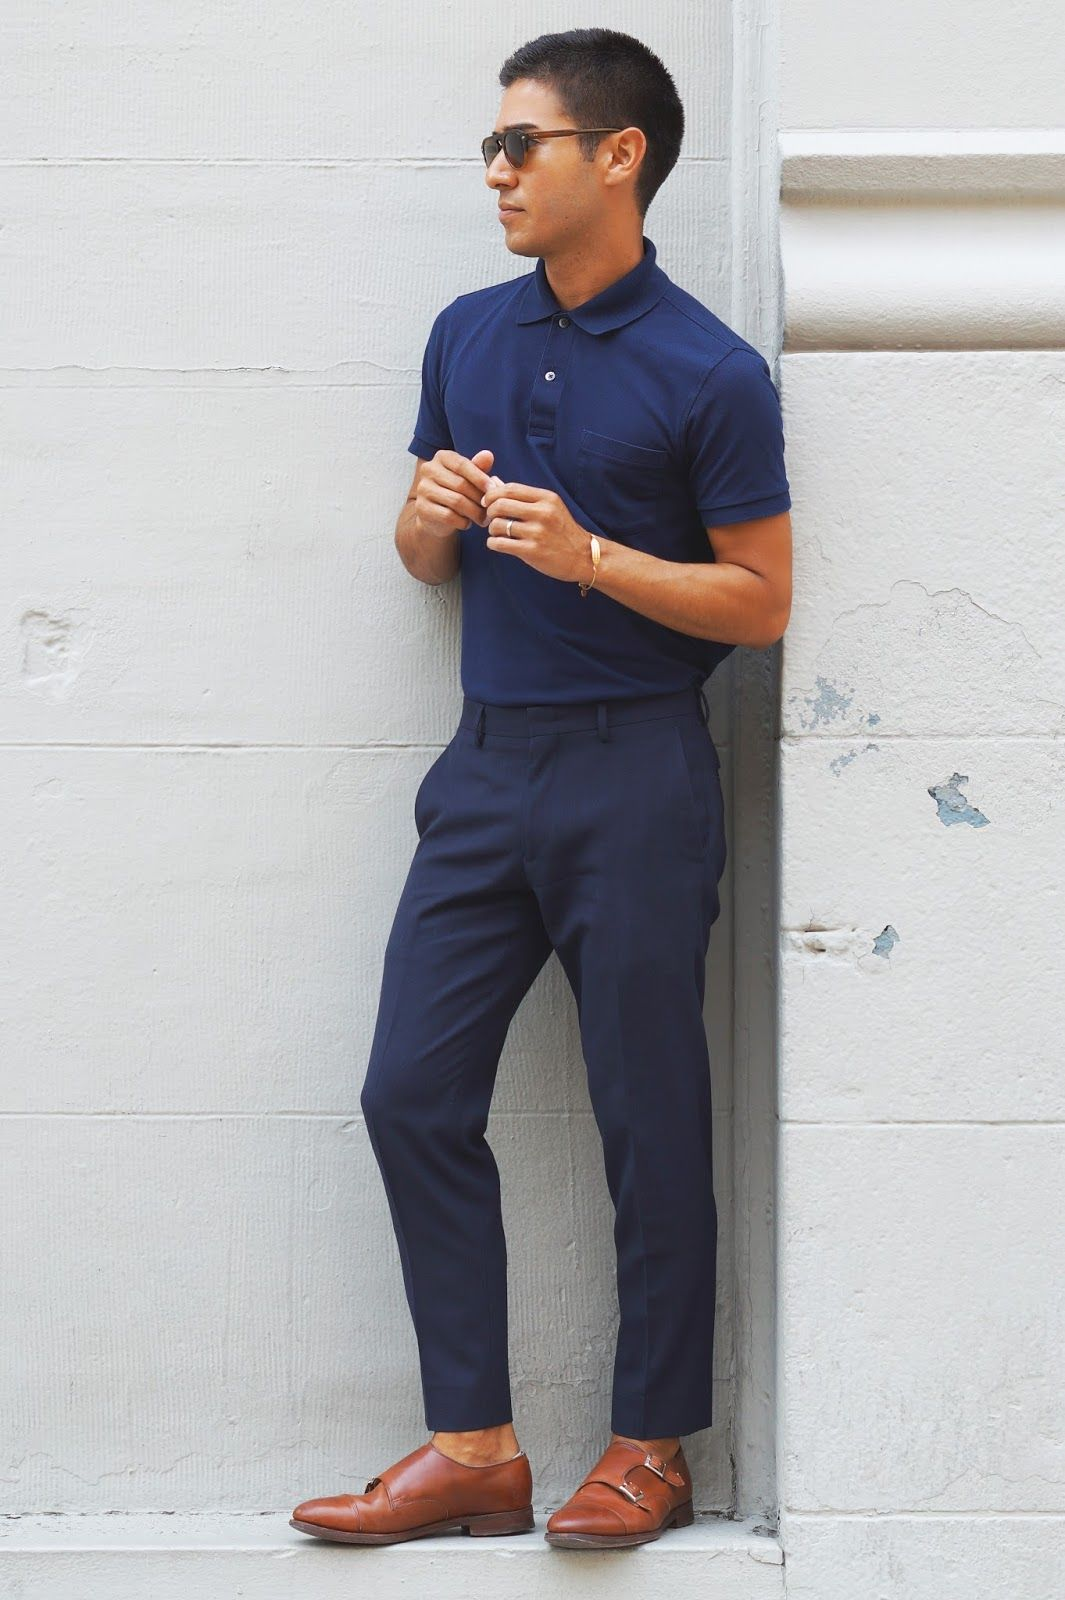 Polo shirt outfits, Pants outfit men